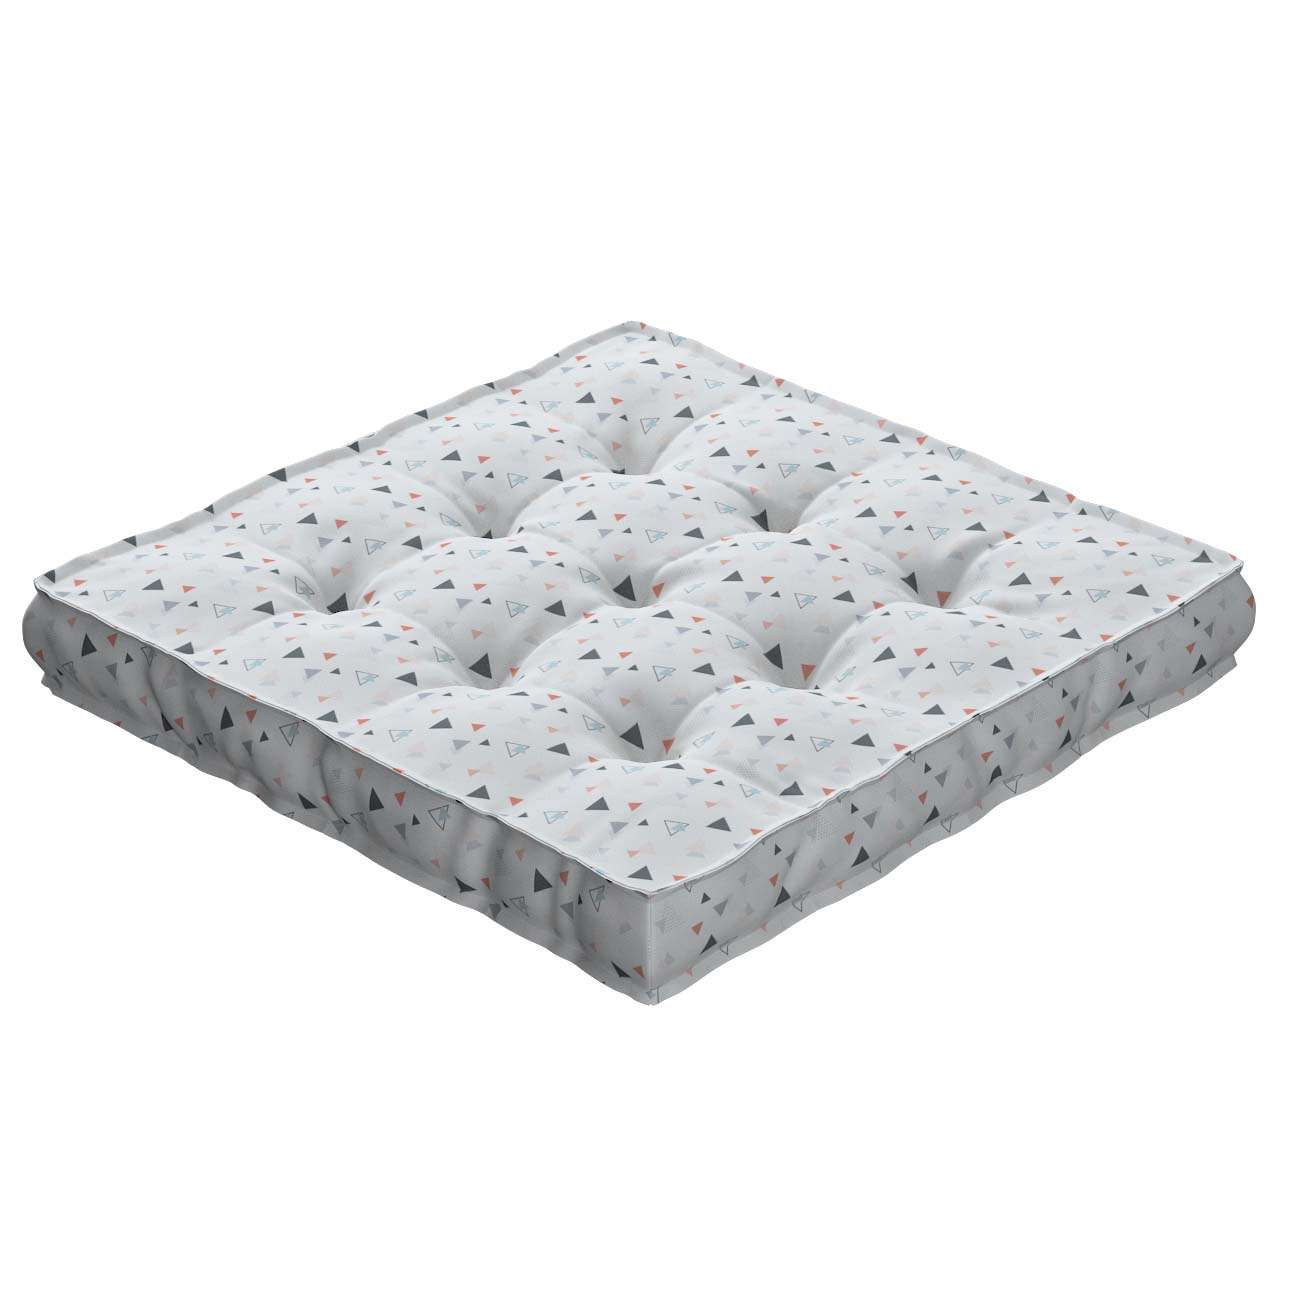 Tomi seat pad in collection Magic Collection, fabric: 500-22